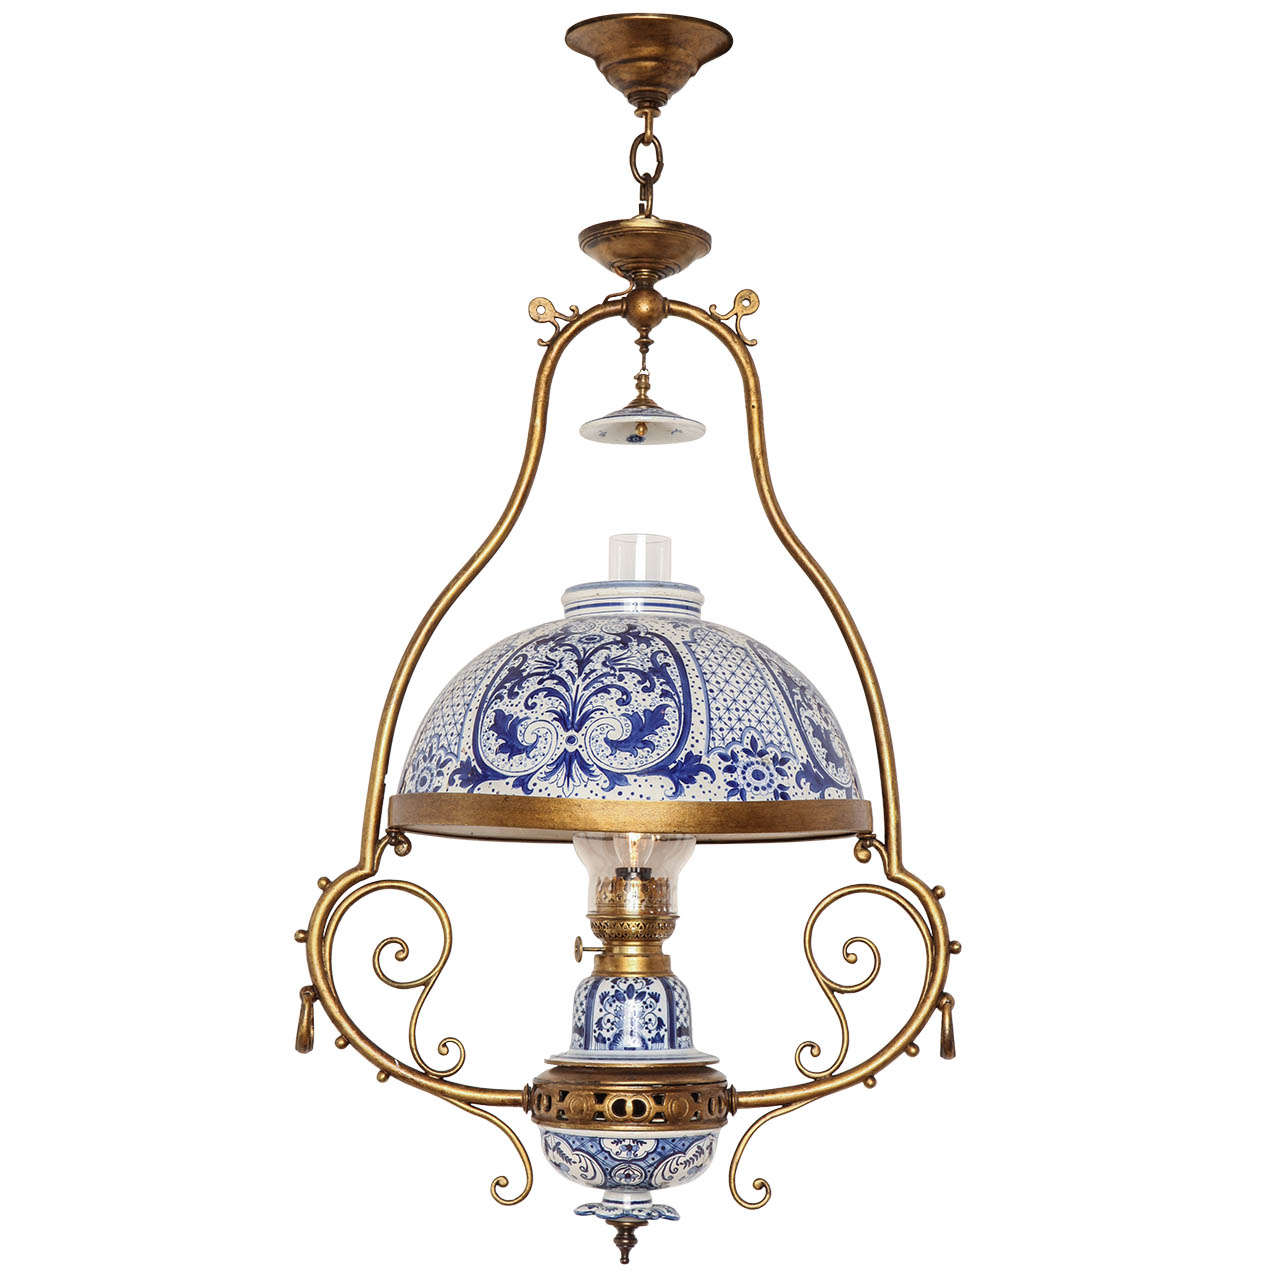 Single-Light Dutch Delft Fixture at 1stdibs